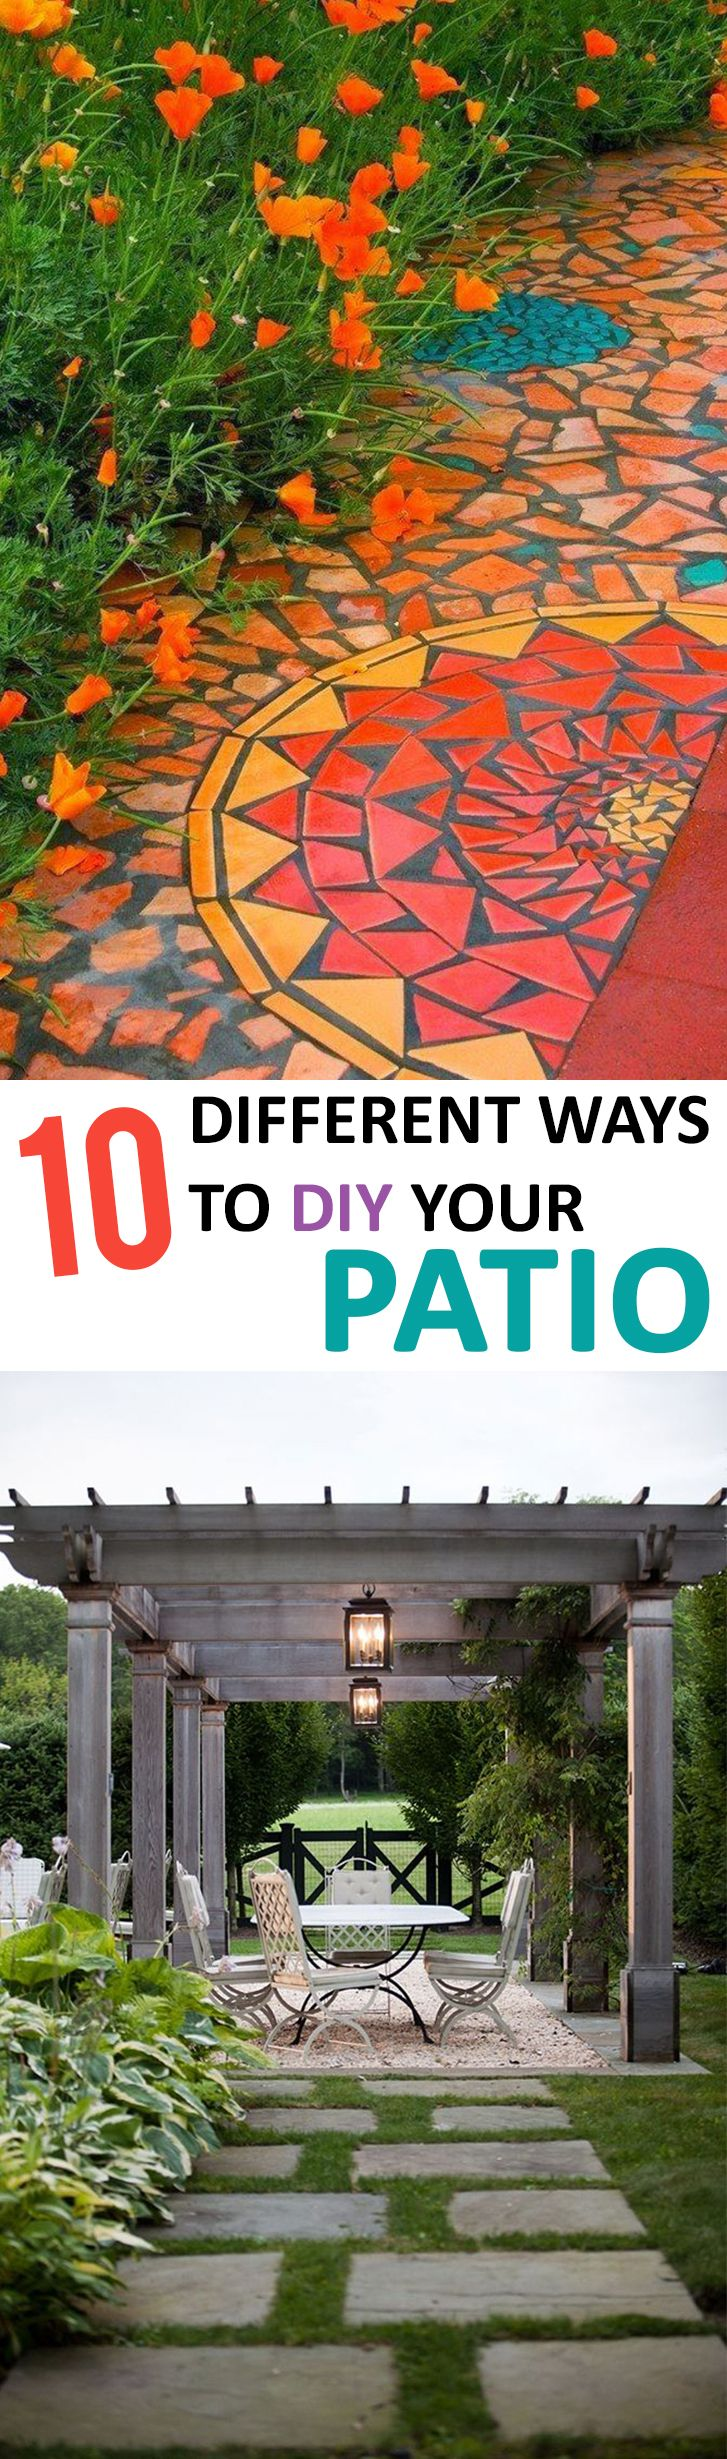 10 Different Ways to DIY Your Patio Don't you love this great outdoor patio idea? Thinking about buying a home or selling your home? LystHouse is the simple way to buy or sell your home. Visit http://www.LystHouse.com to maximize your ROI on your home sale.